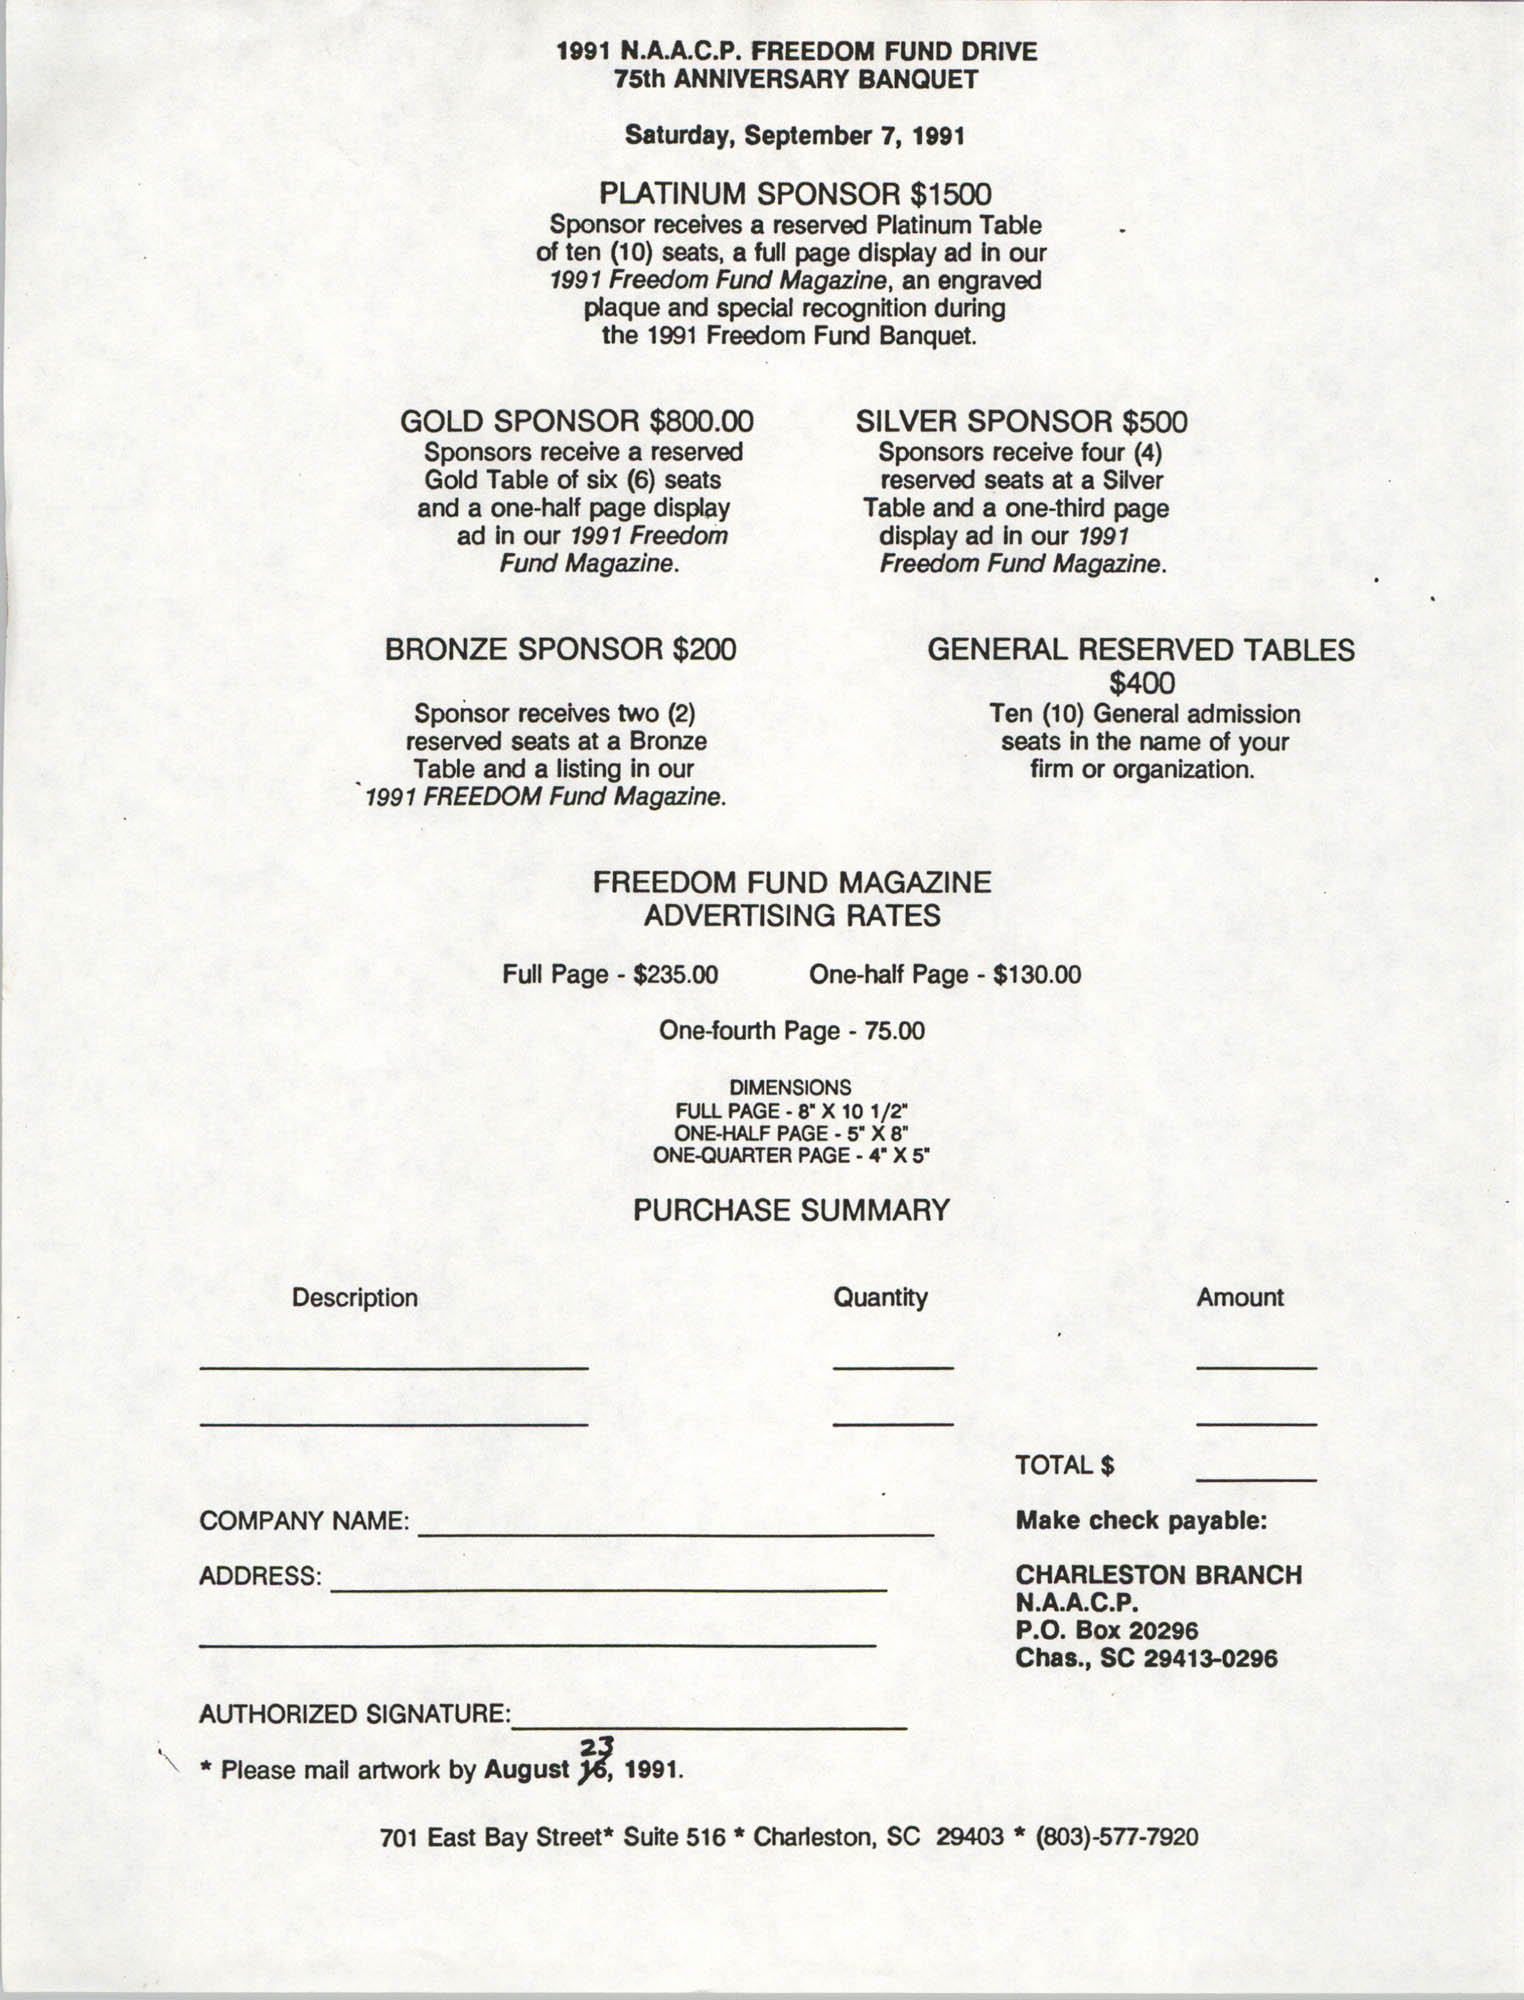 Sponsorship Form, 1991 Freedom Fund Drive, National Association for the Advancement of Colored People